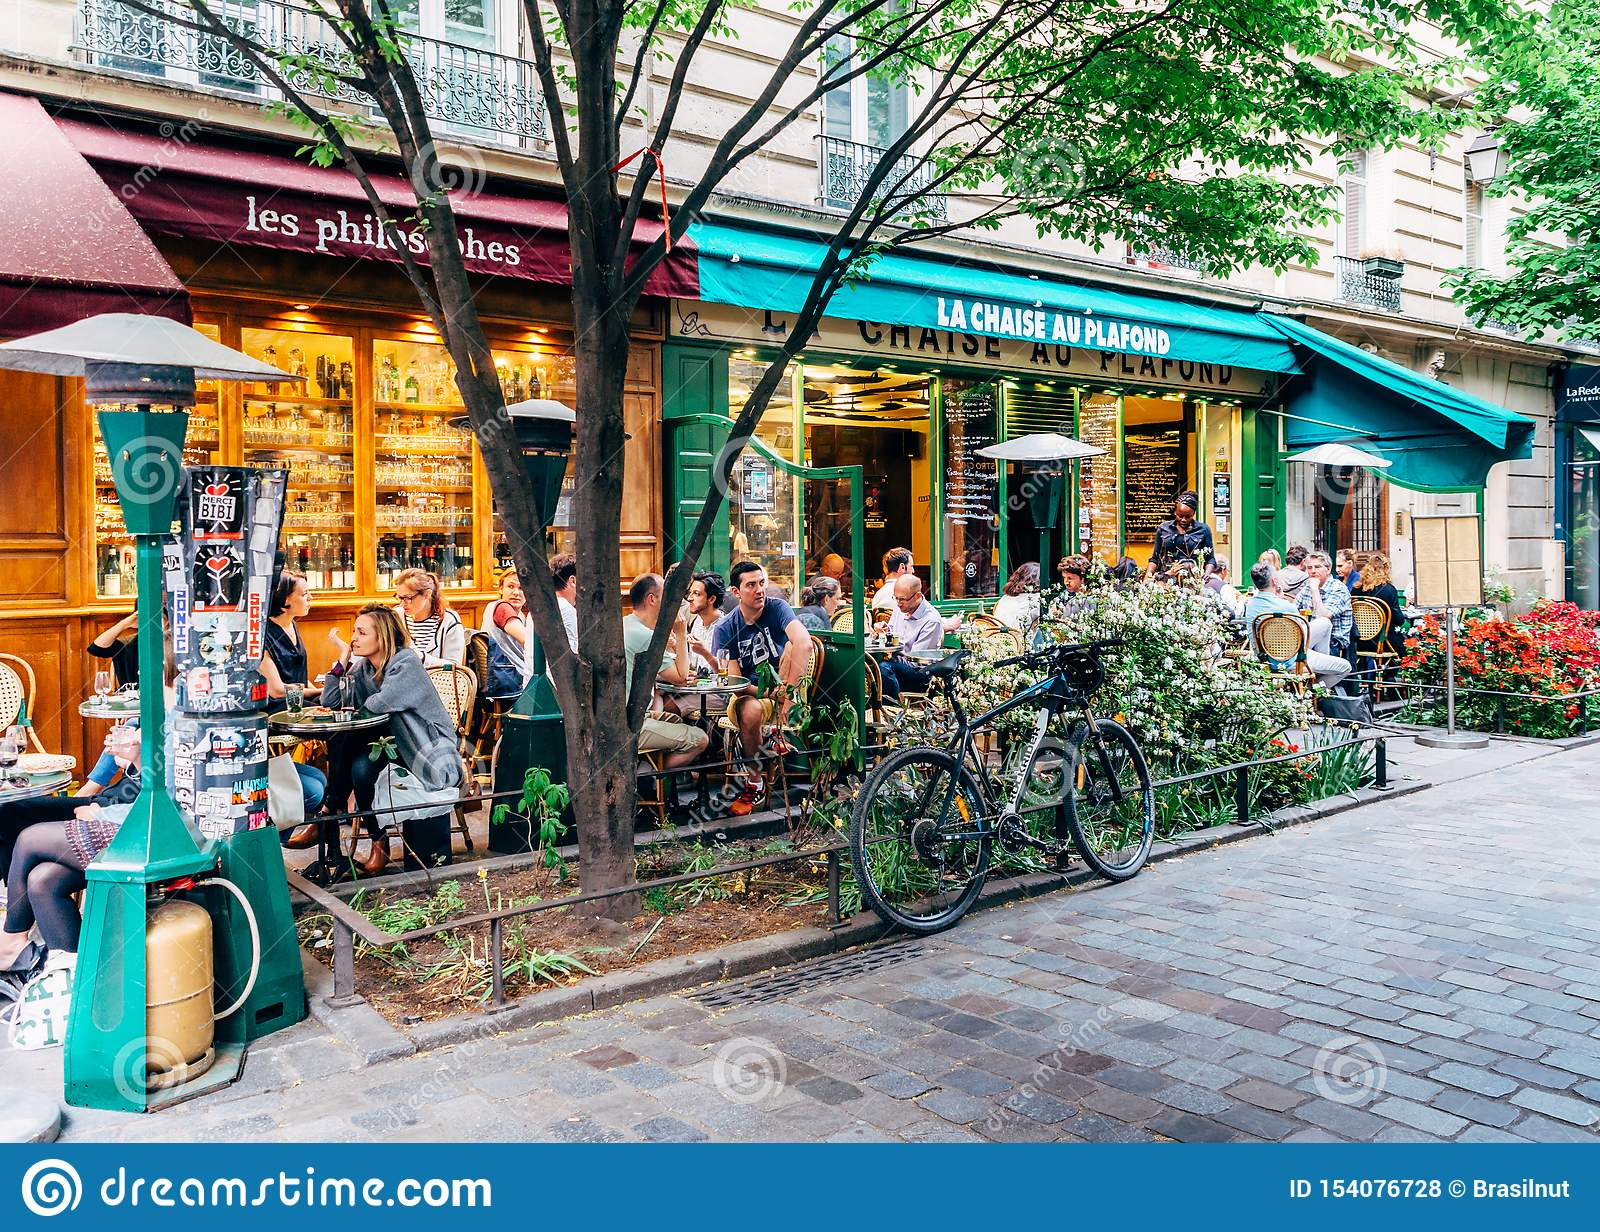 People Enjoy A Cafe And Conversation At A Quiet And Charming